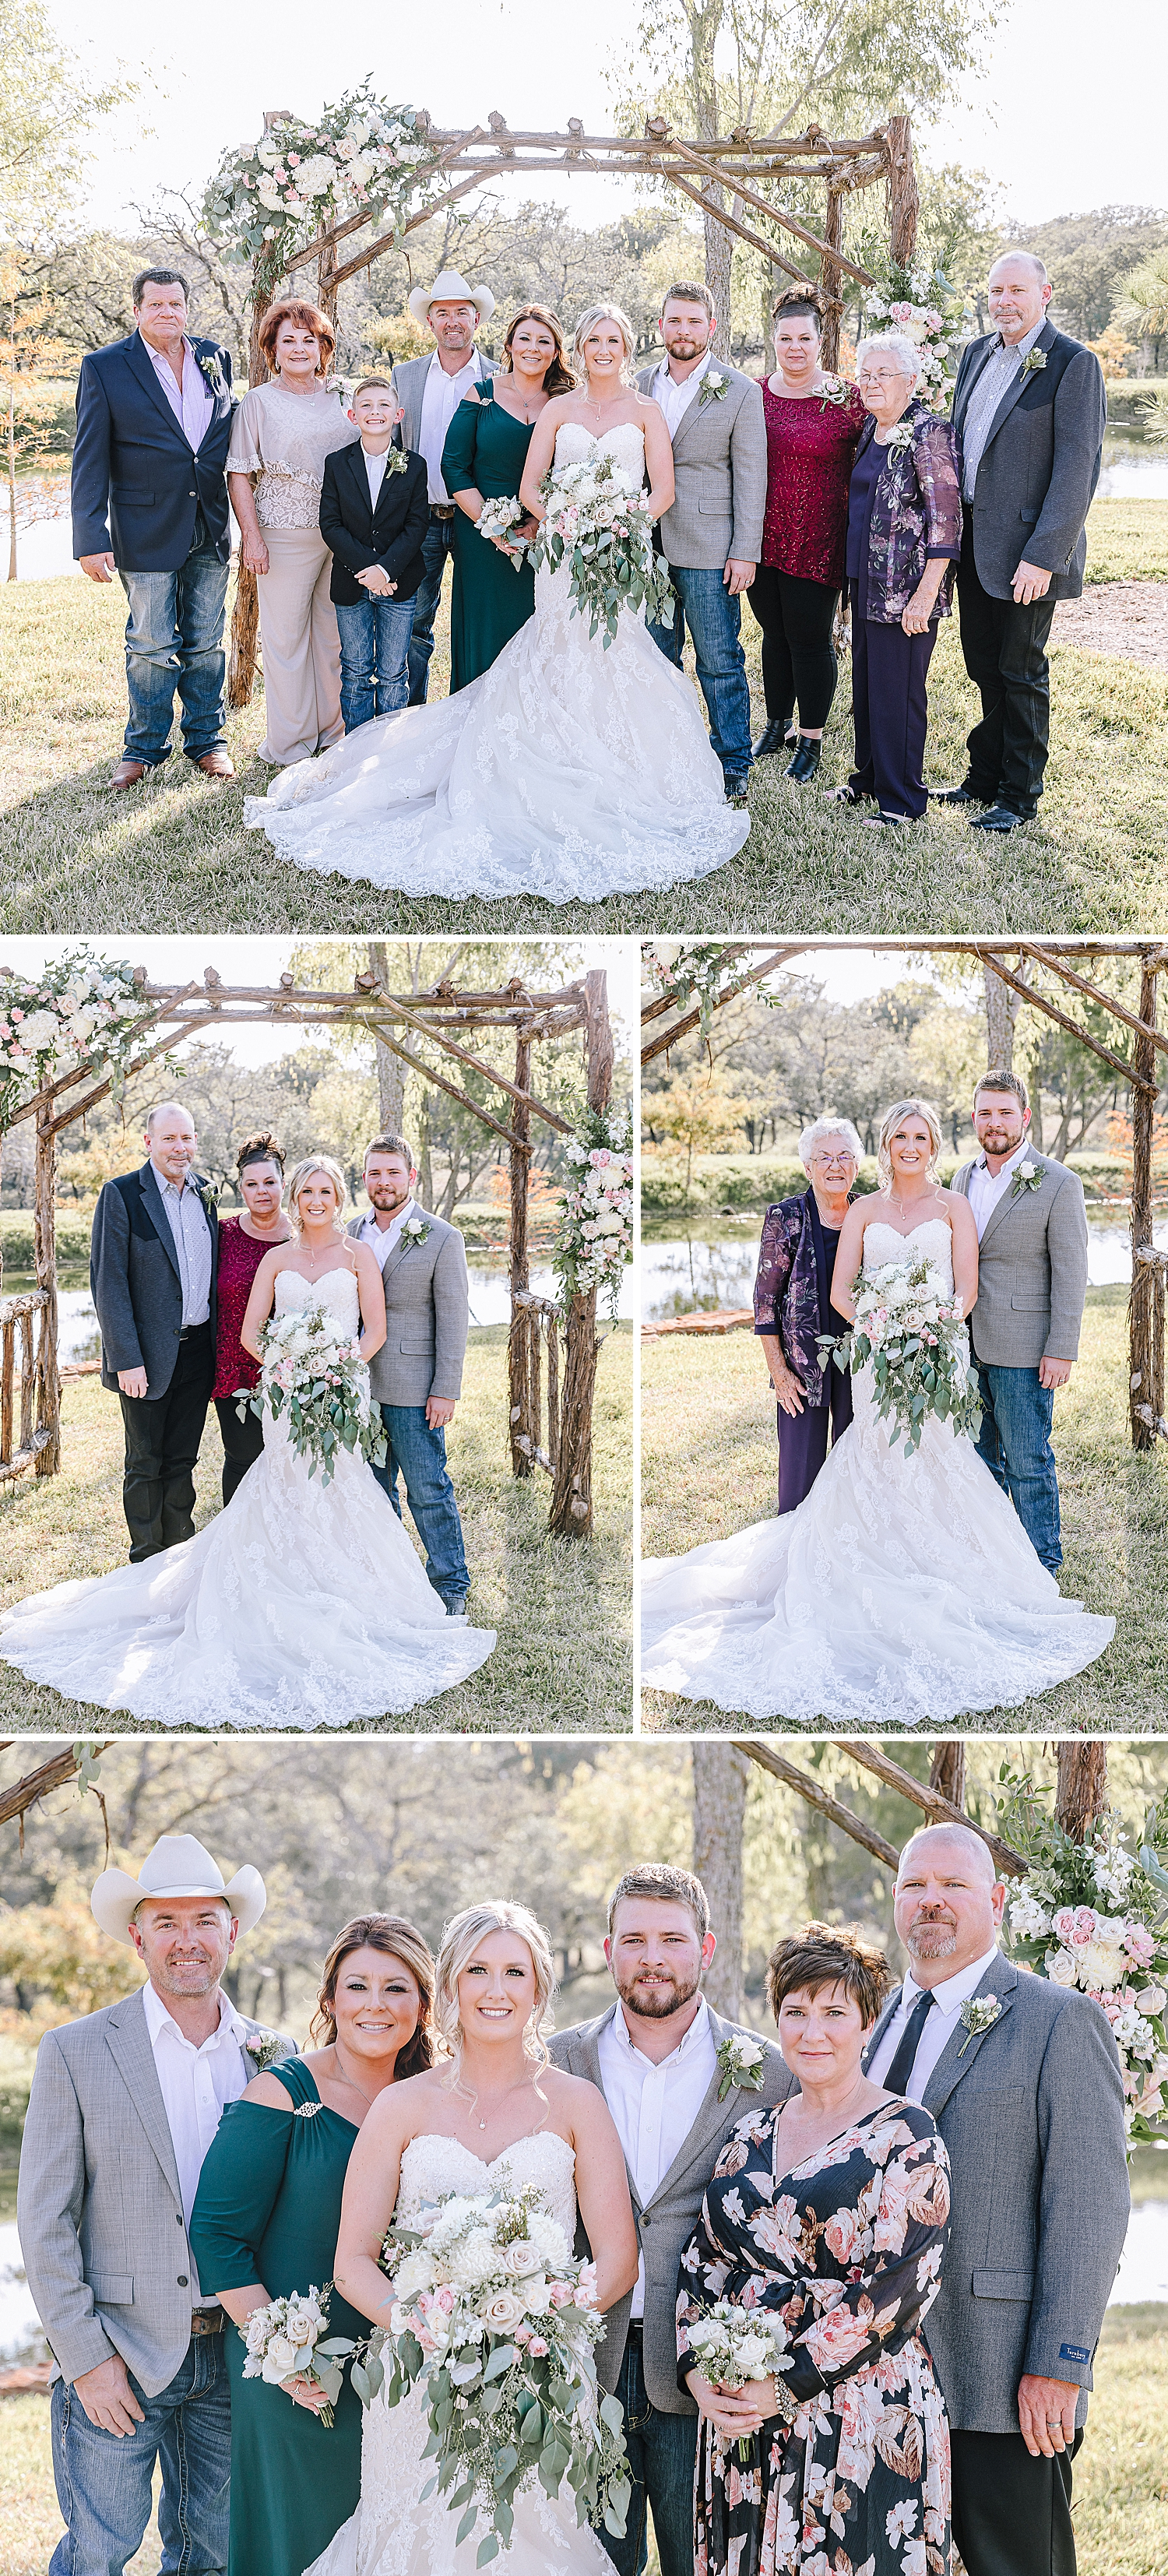 Rackler-Ranch-LaVernia-Texas-Wedding-Carly-Barton-Photography_0032.jpg